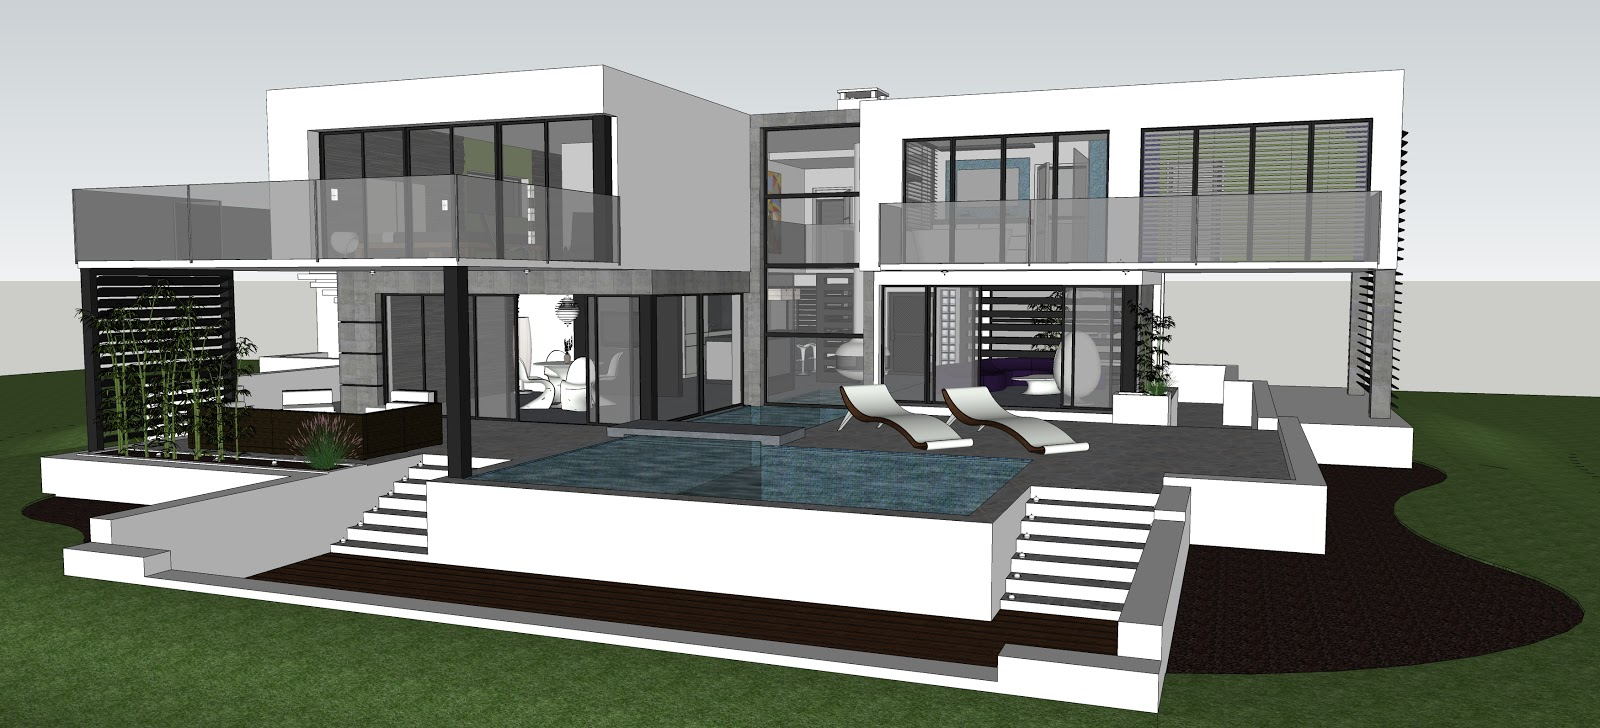 Exterior: House Rendering - Day And Night Scene